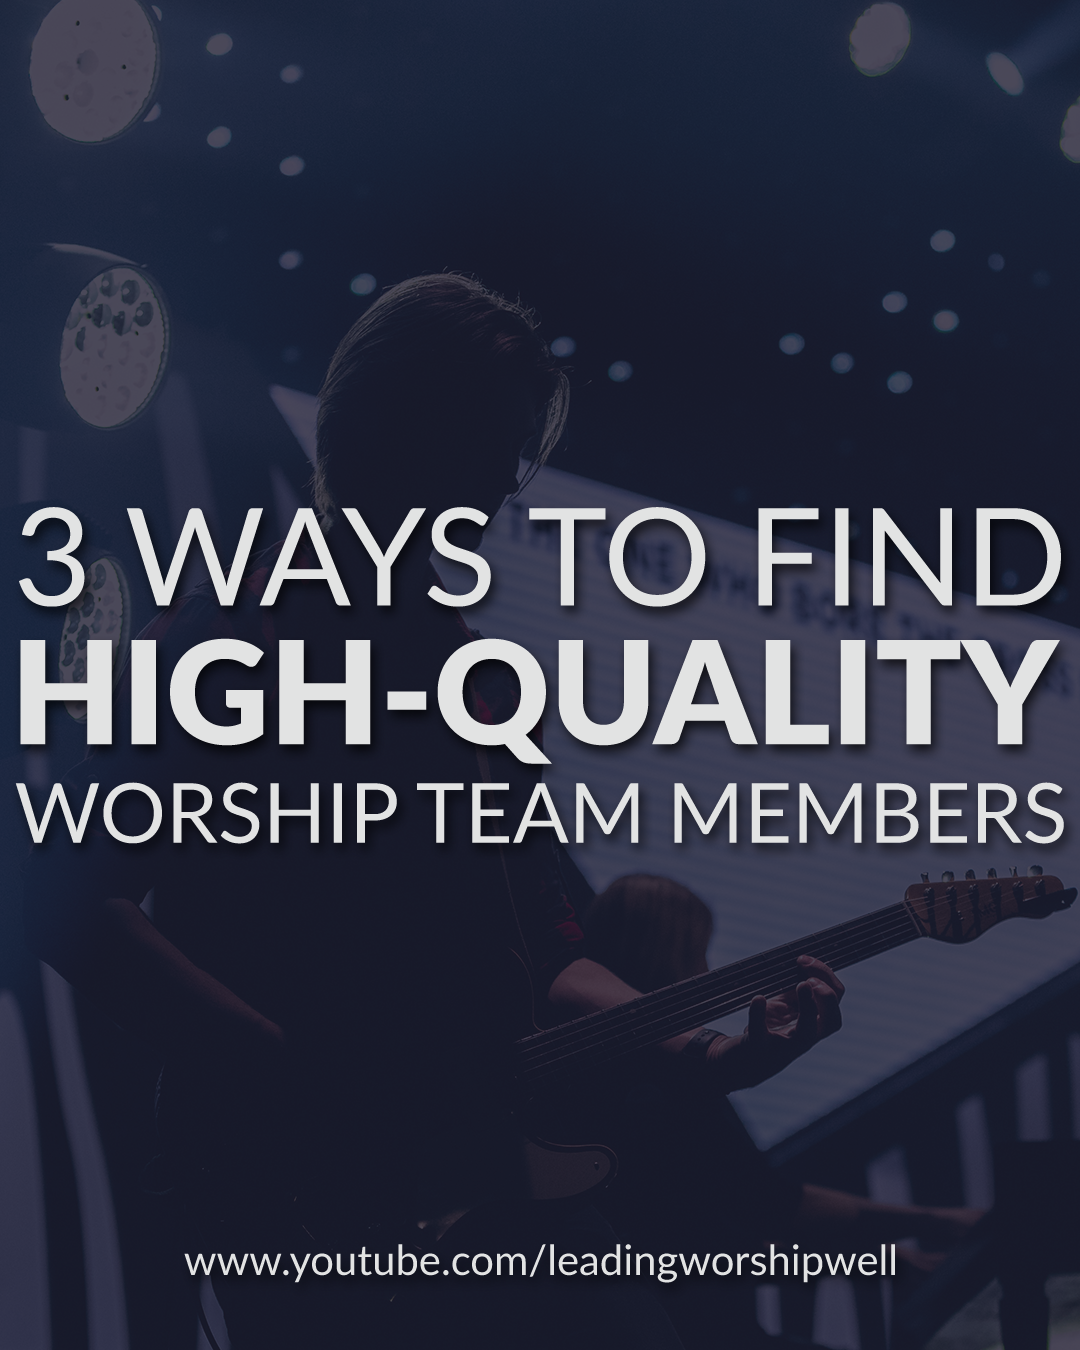 3 Ways To Find High-Quality Worship Team Members (Video)